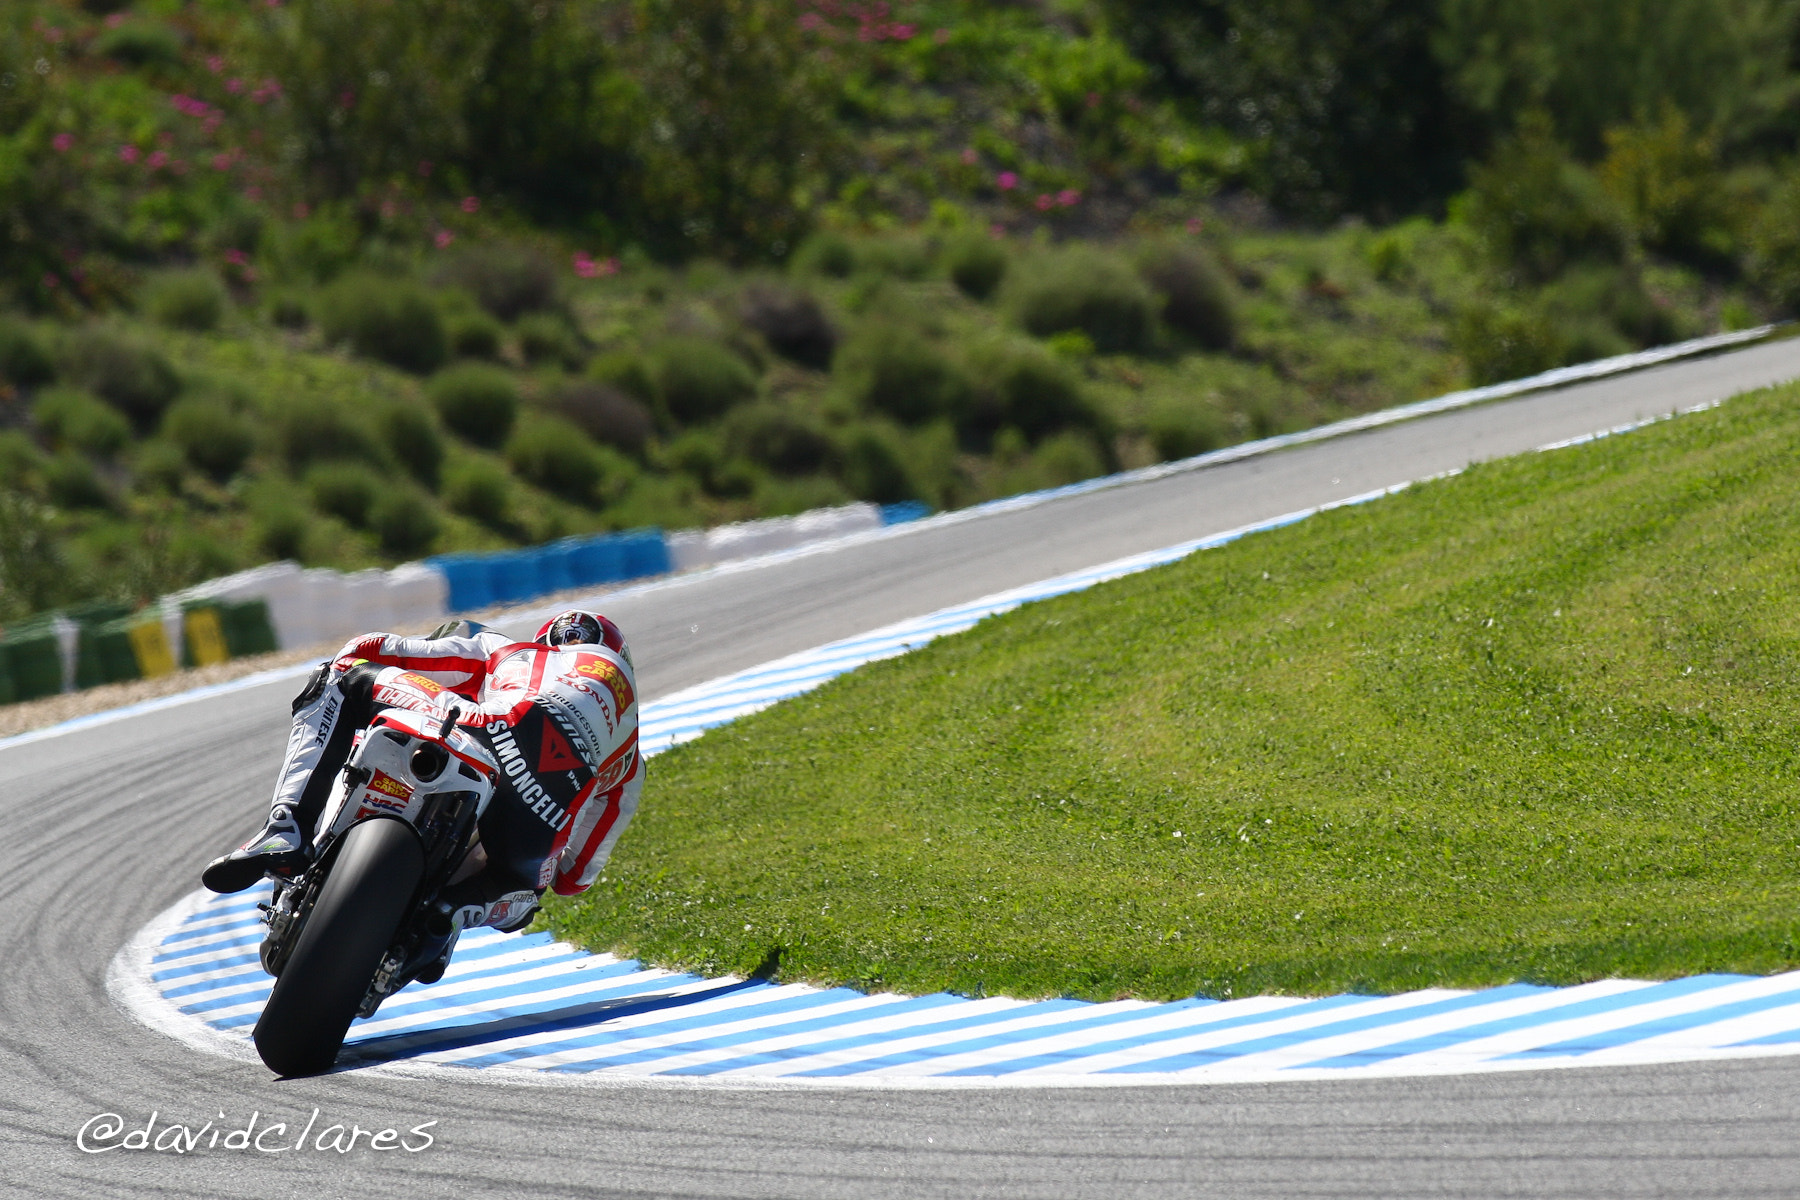 Photograph Marco Simoncelli REF. 0147 by David Clares on 500px